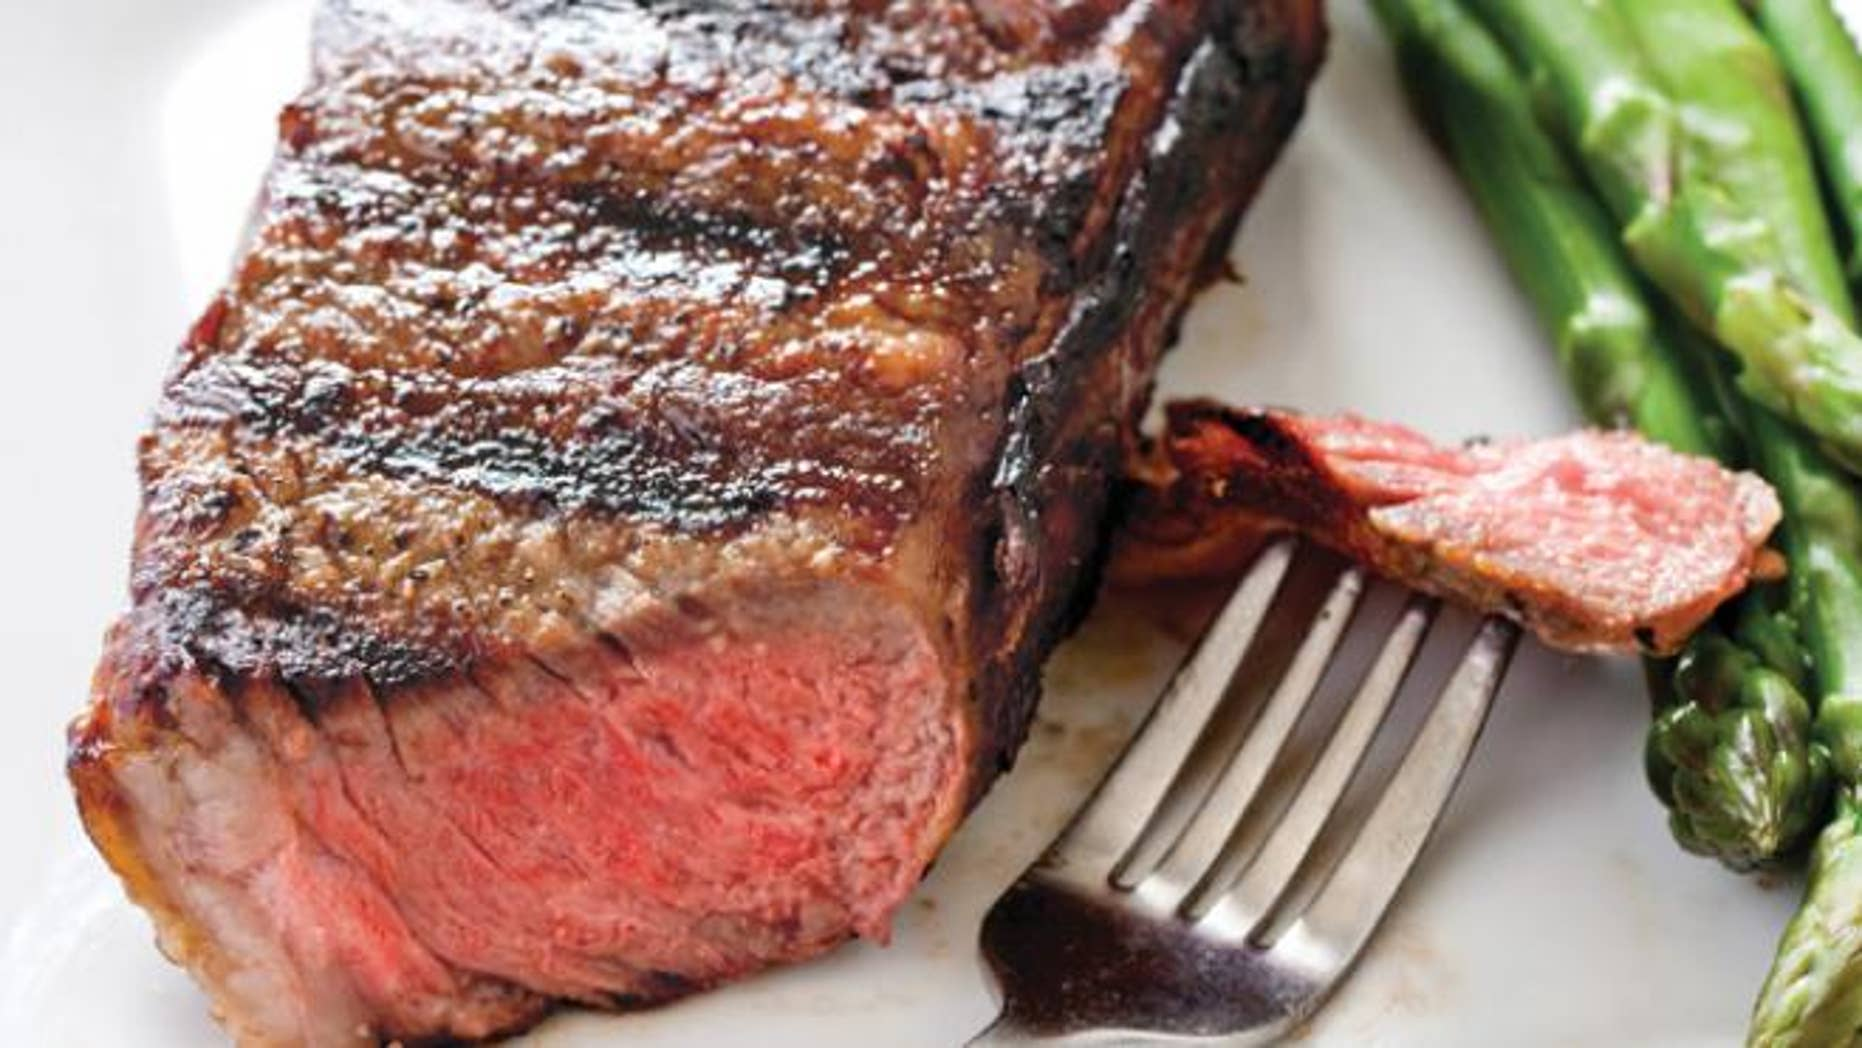 Meat in the diet of pregnant women increases the risk of developing diabetes